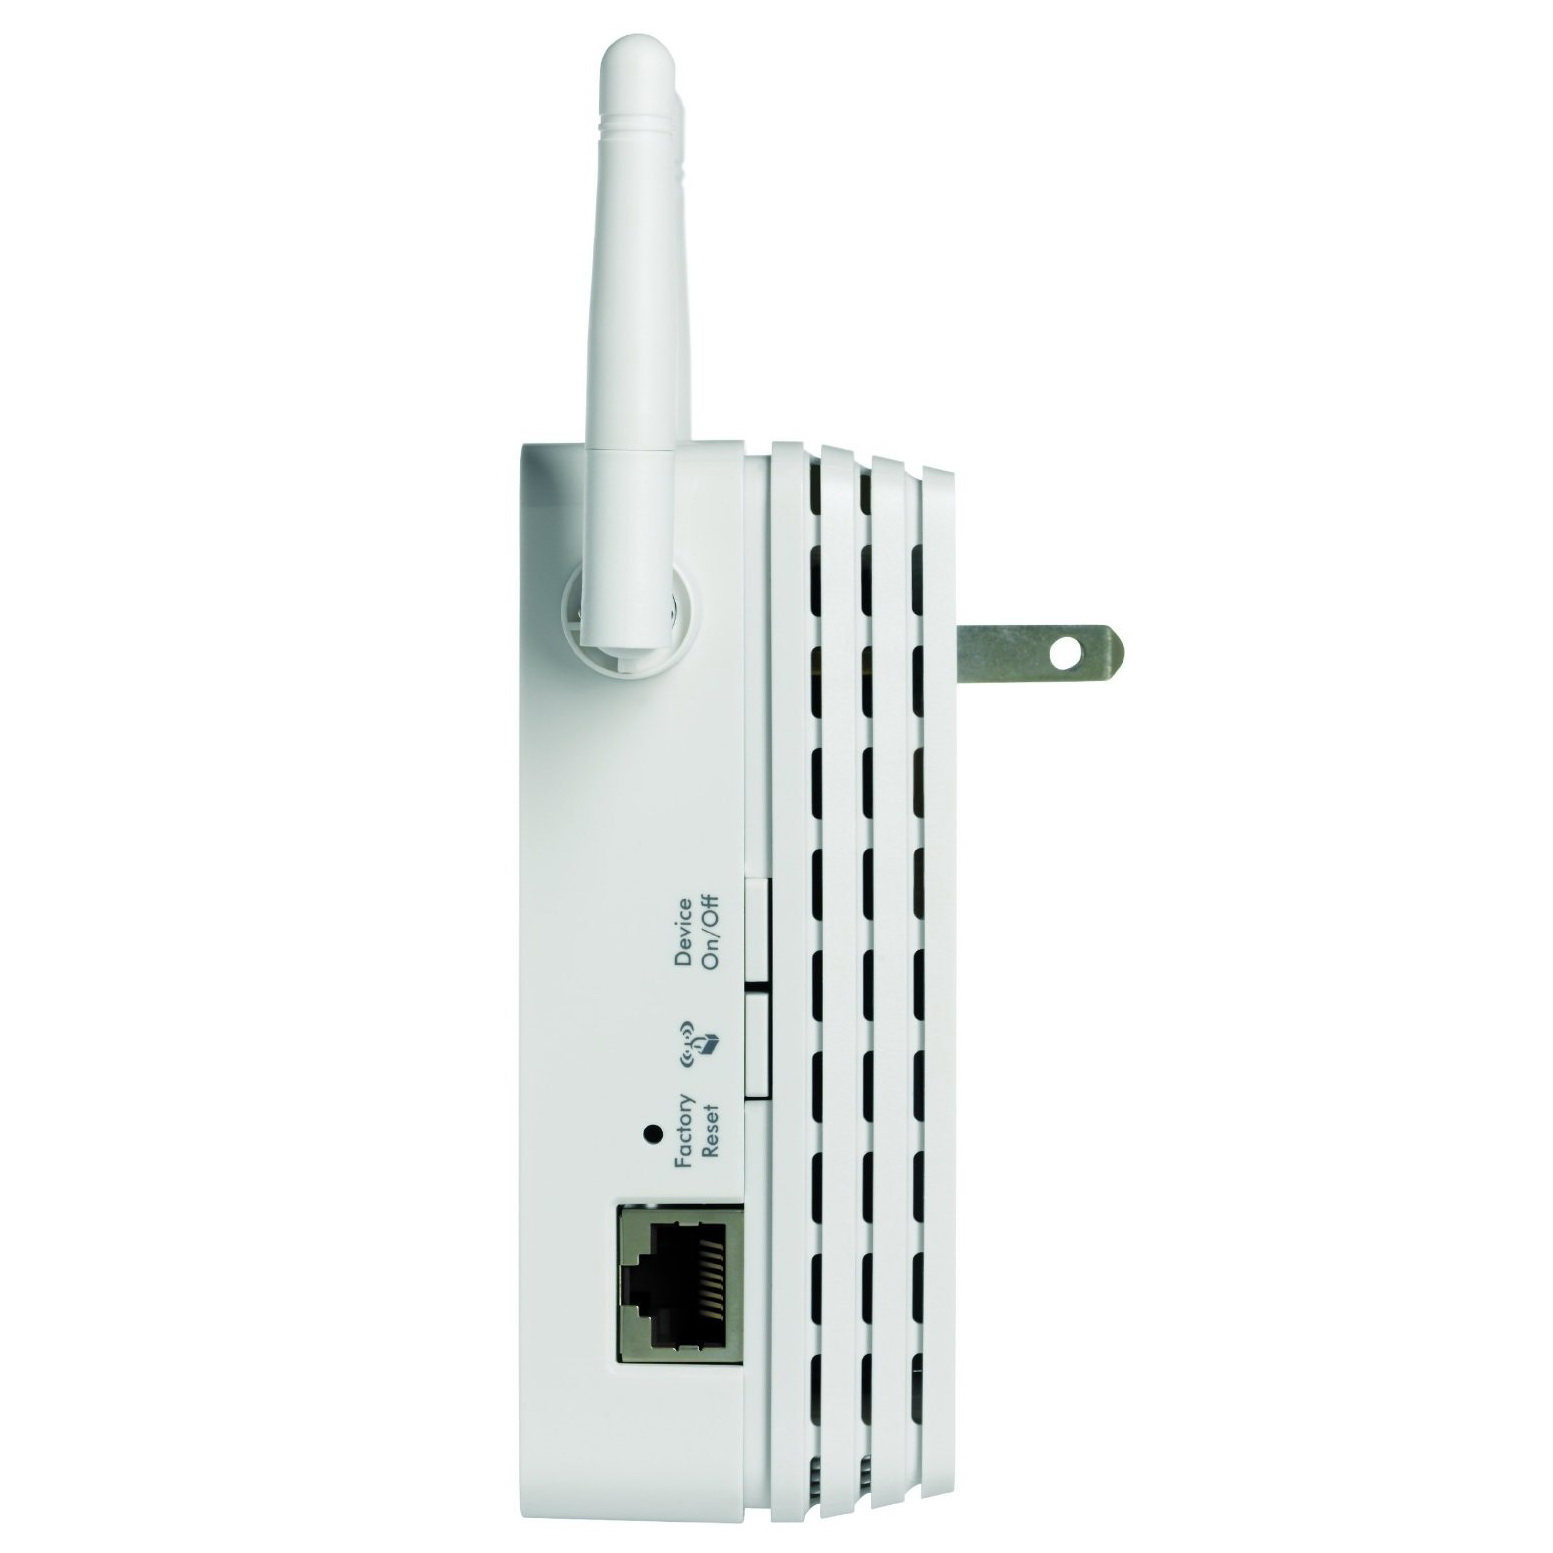 Buy netgear universal wi fi range extender with ethernet - Wireless extender with ethernet ports ...